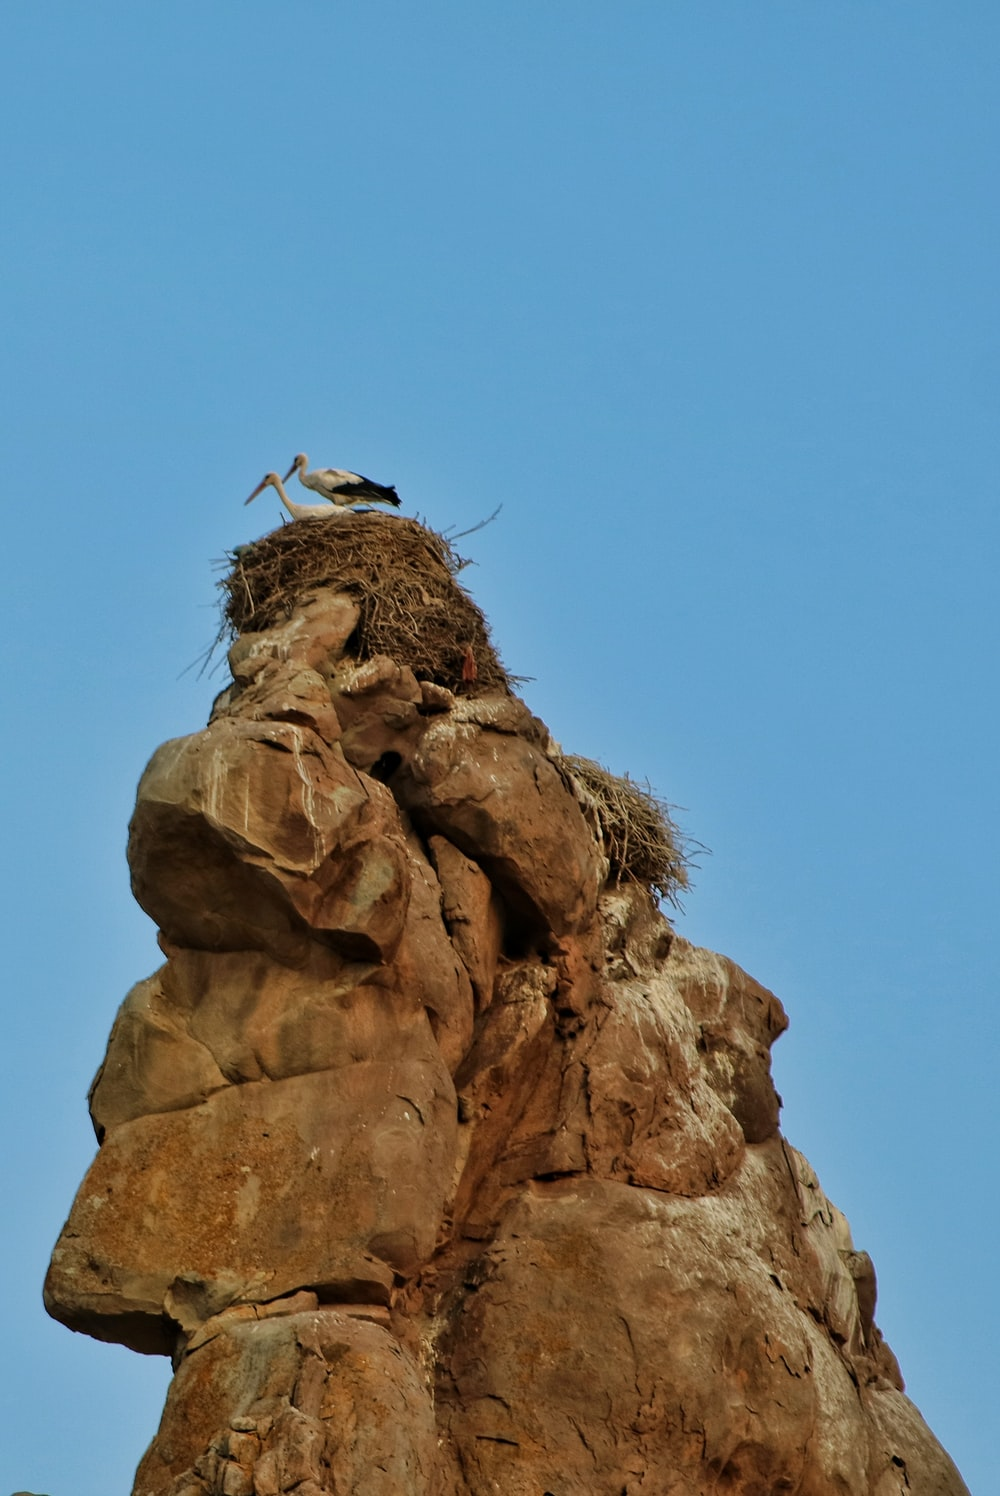 birds on rock with nest